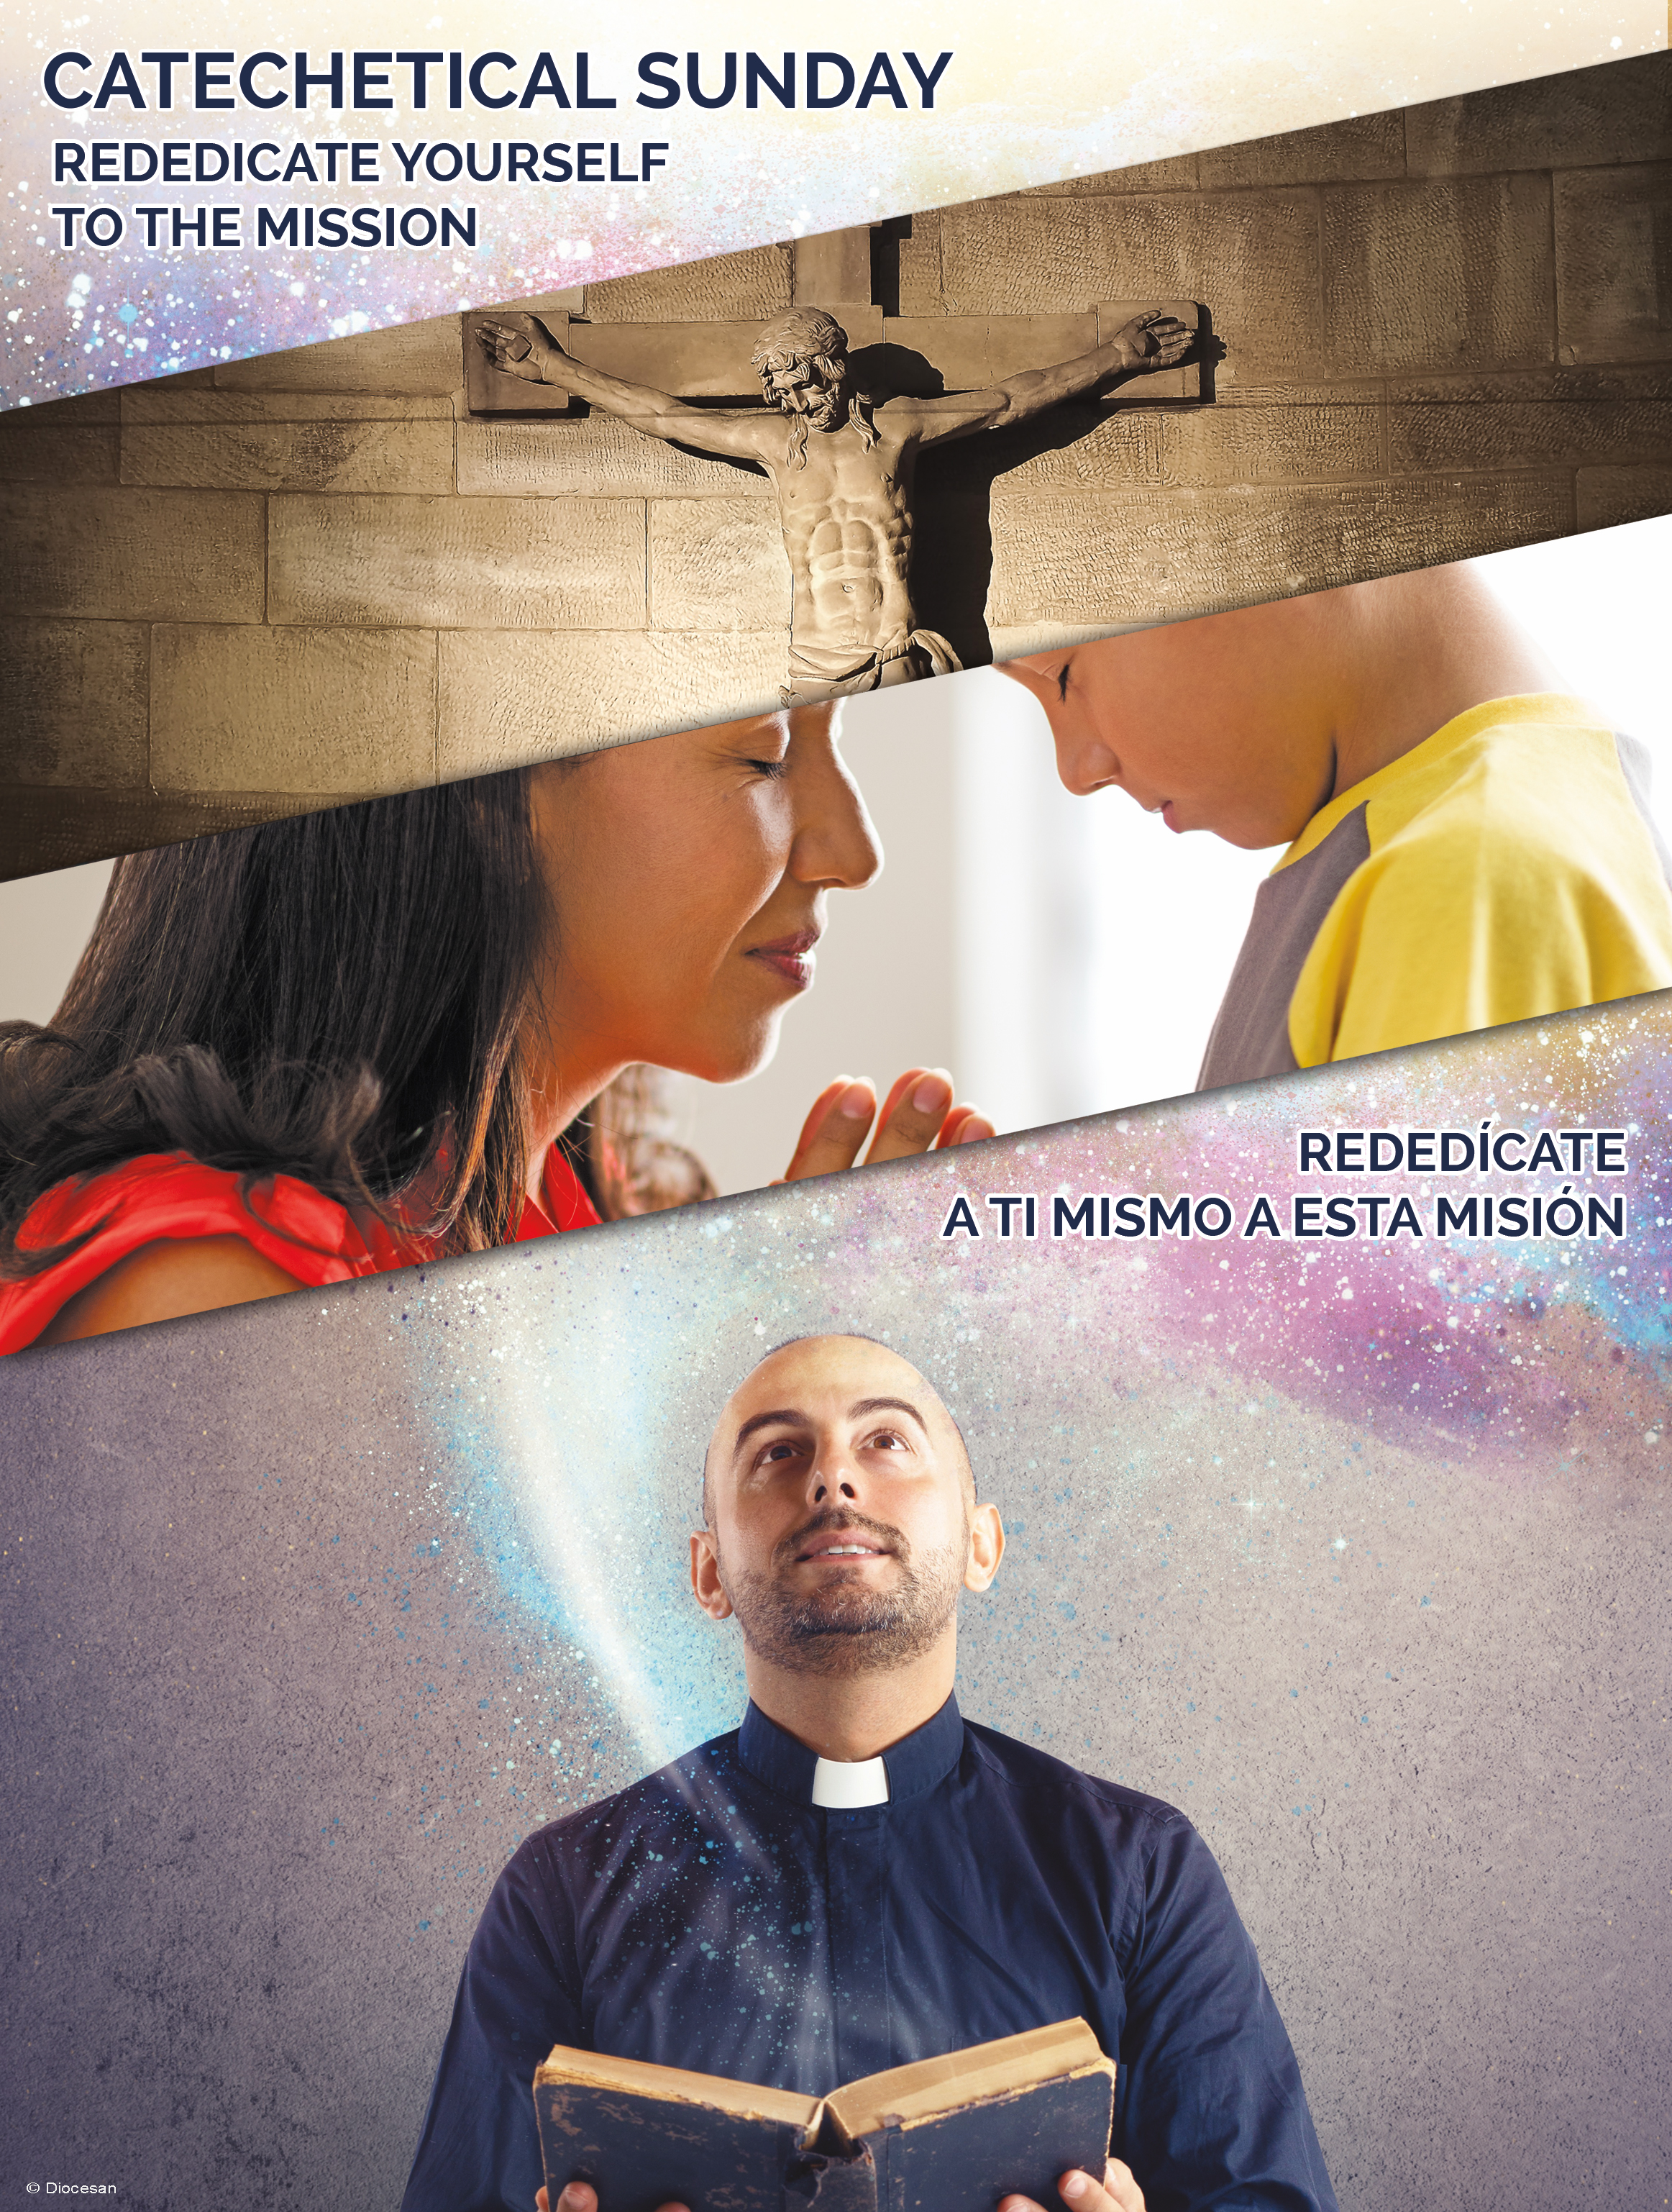 Catechetical Sunday - Rededicate Yourself - Bilingual